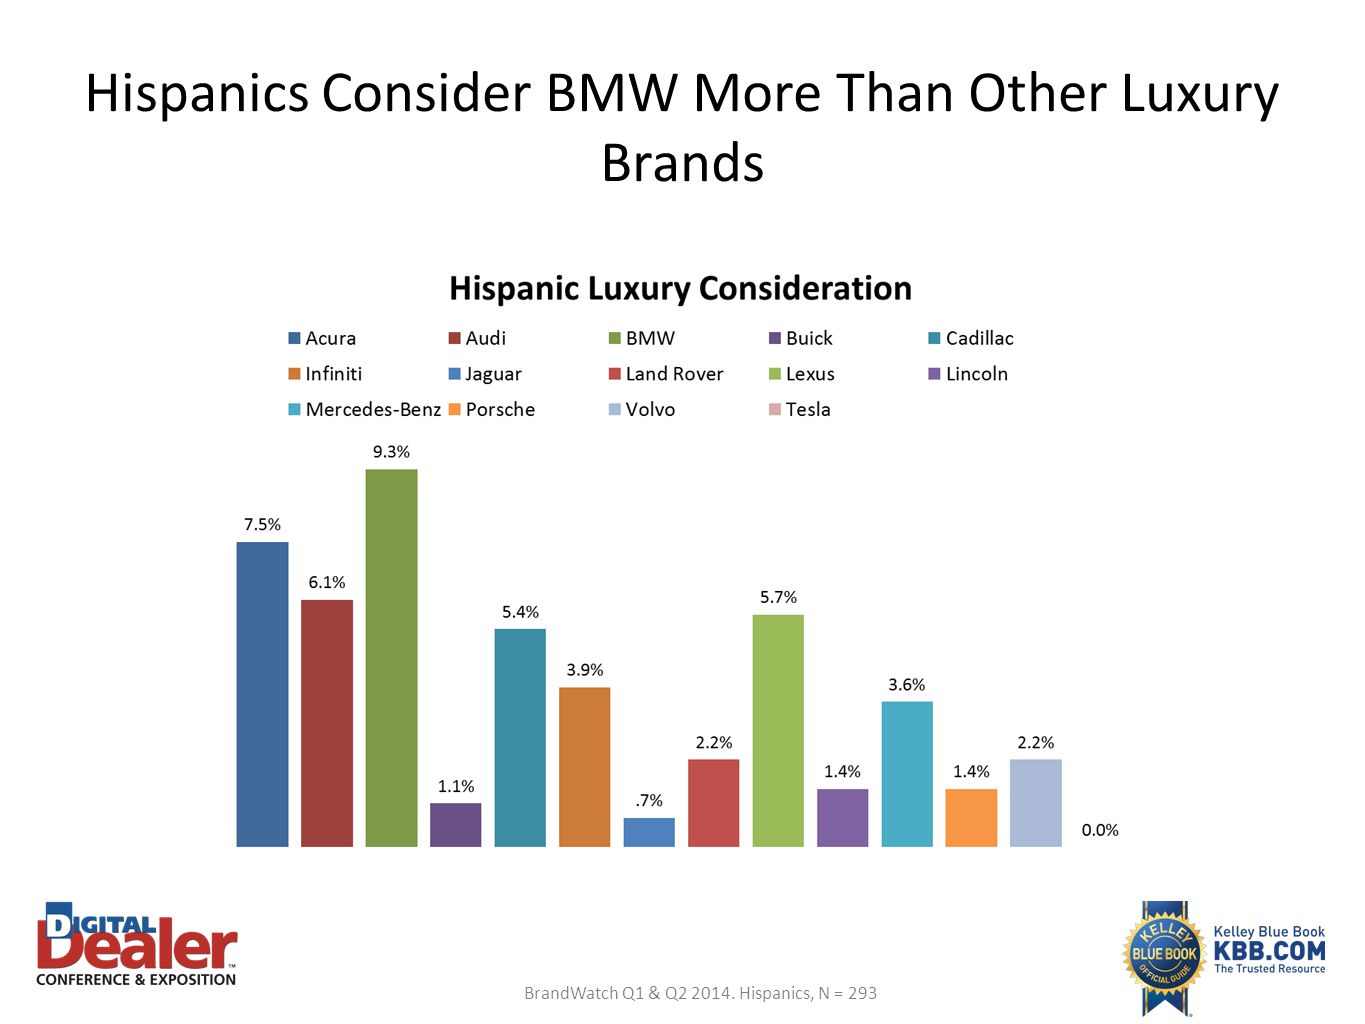 Hispanics Consider BMW More Than Other Luxury Brands